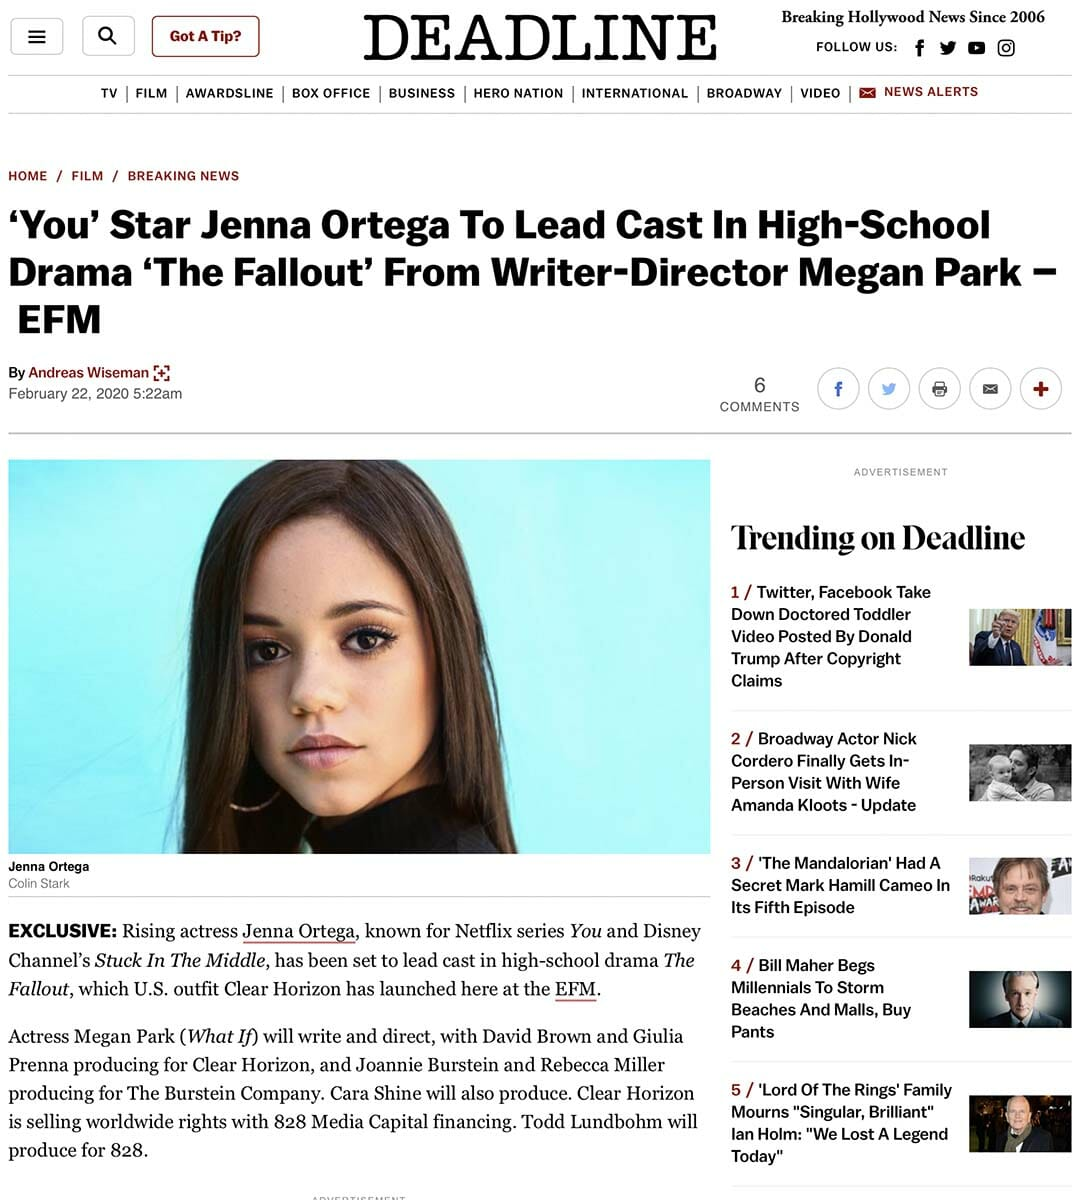 DEADLINE: 'You' Star Jenna Ortega To Lead Cast In High-School Drama 'The Fallout' From Writer-Director Megan Park – EFM